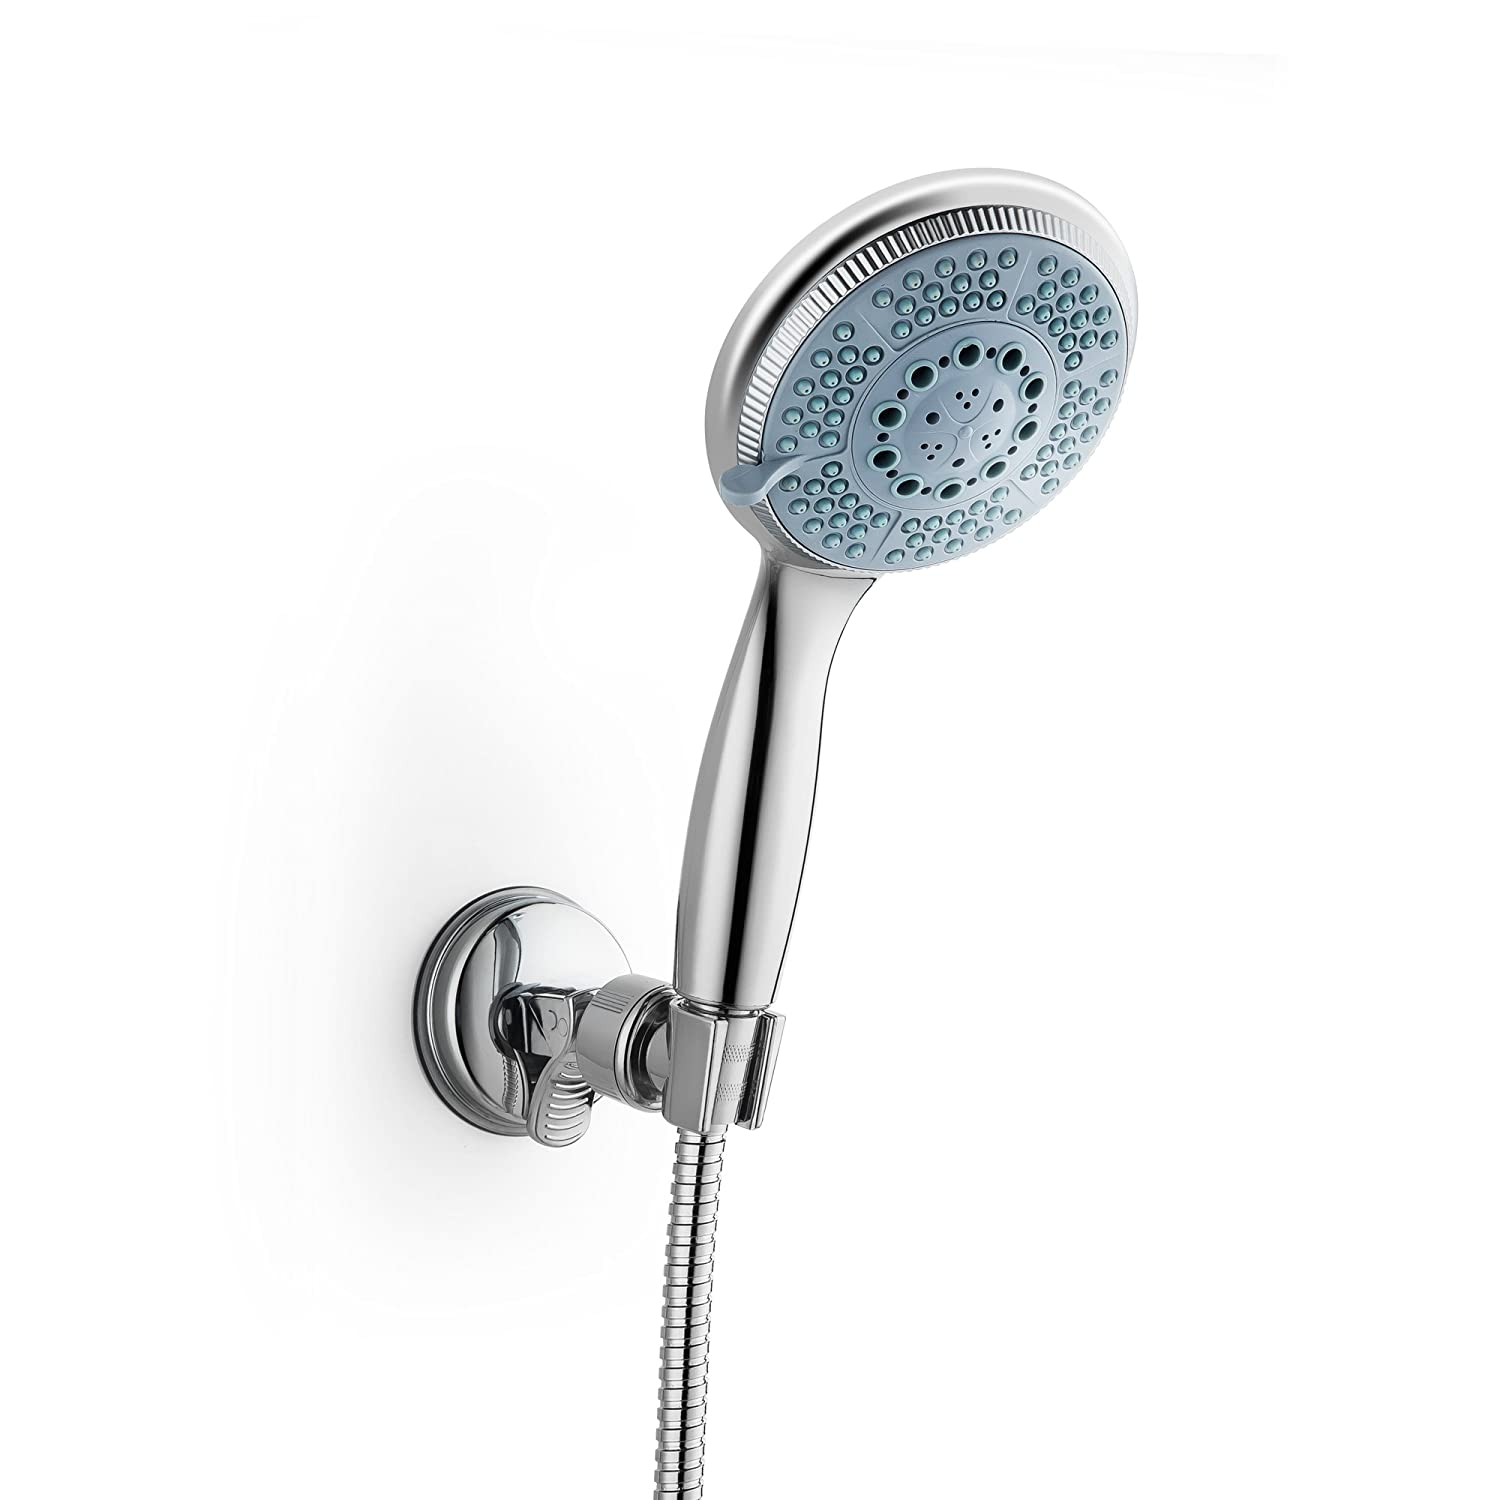 Shower Head, Handheld Shower Head With Powerful Shower Spray, Extra Long Stainless Steel Hose CBT